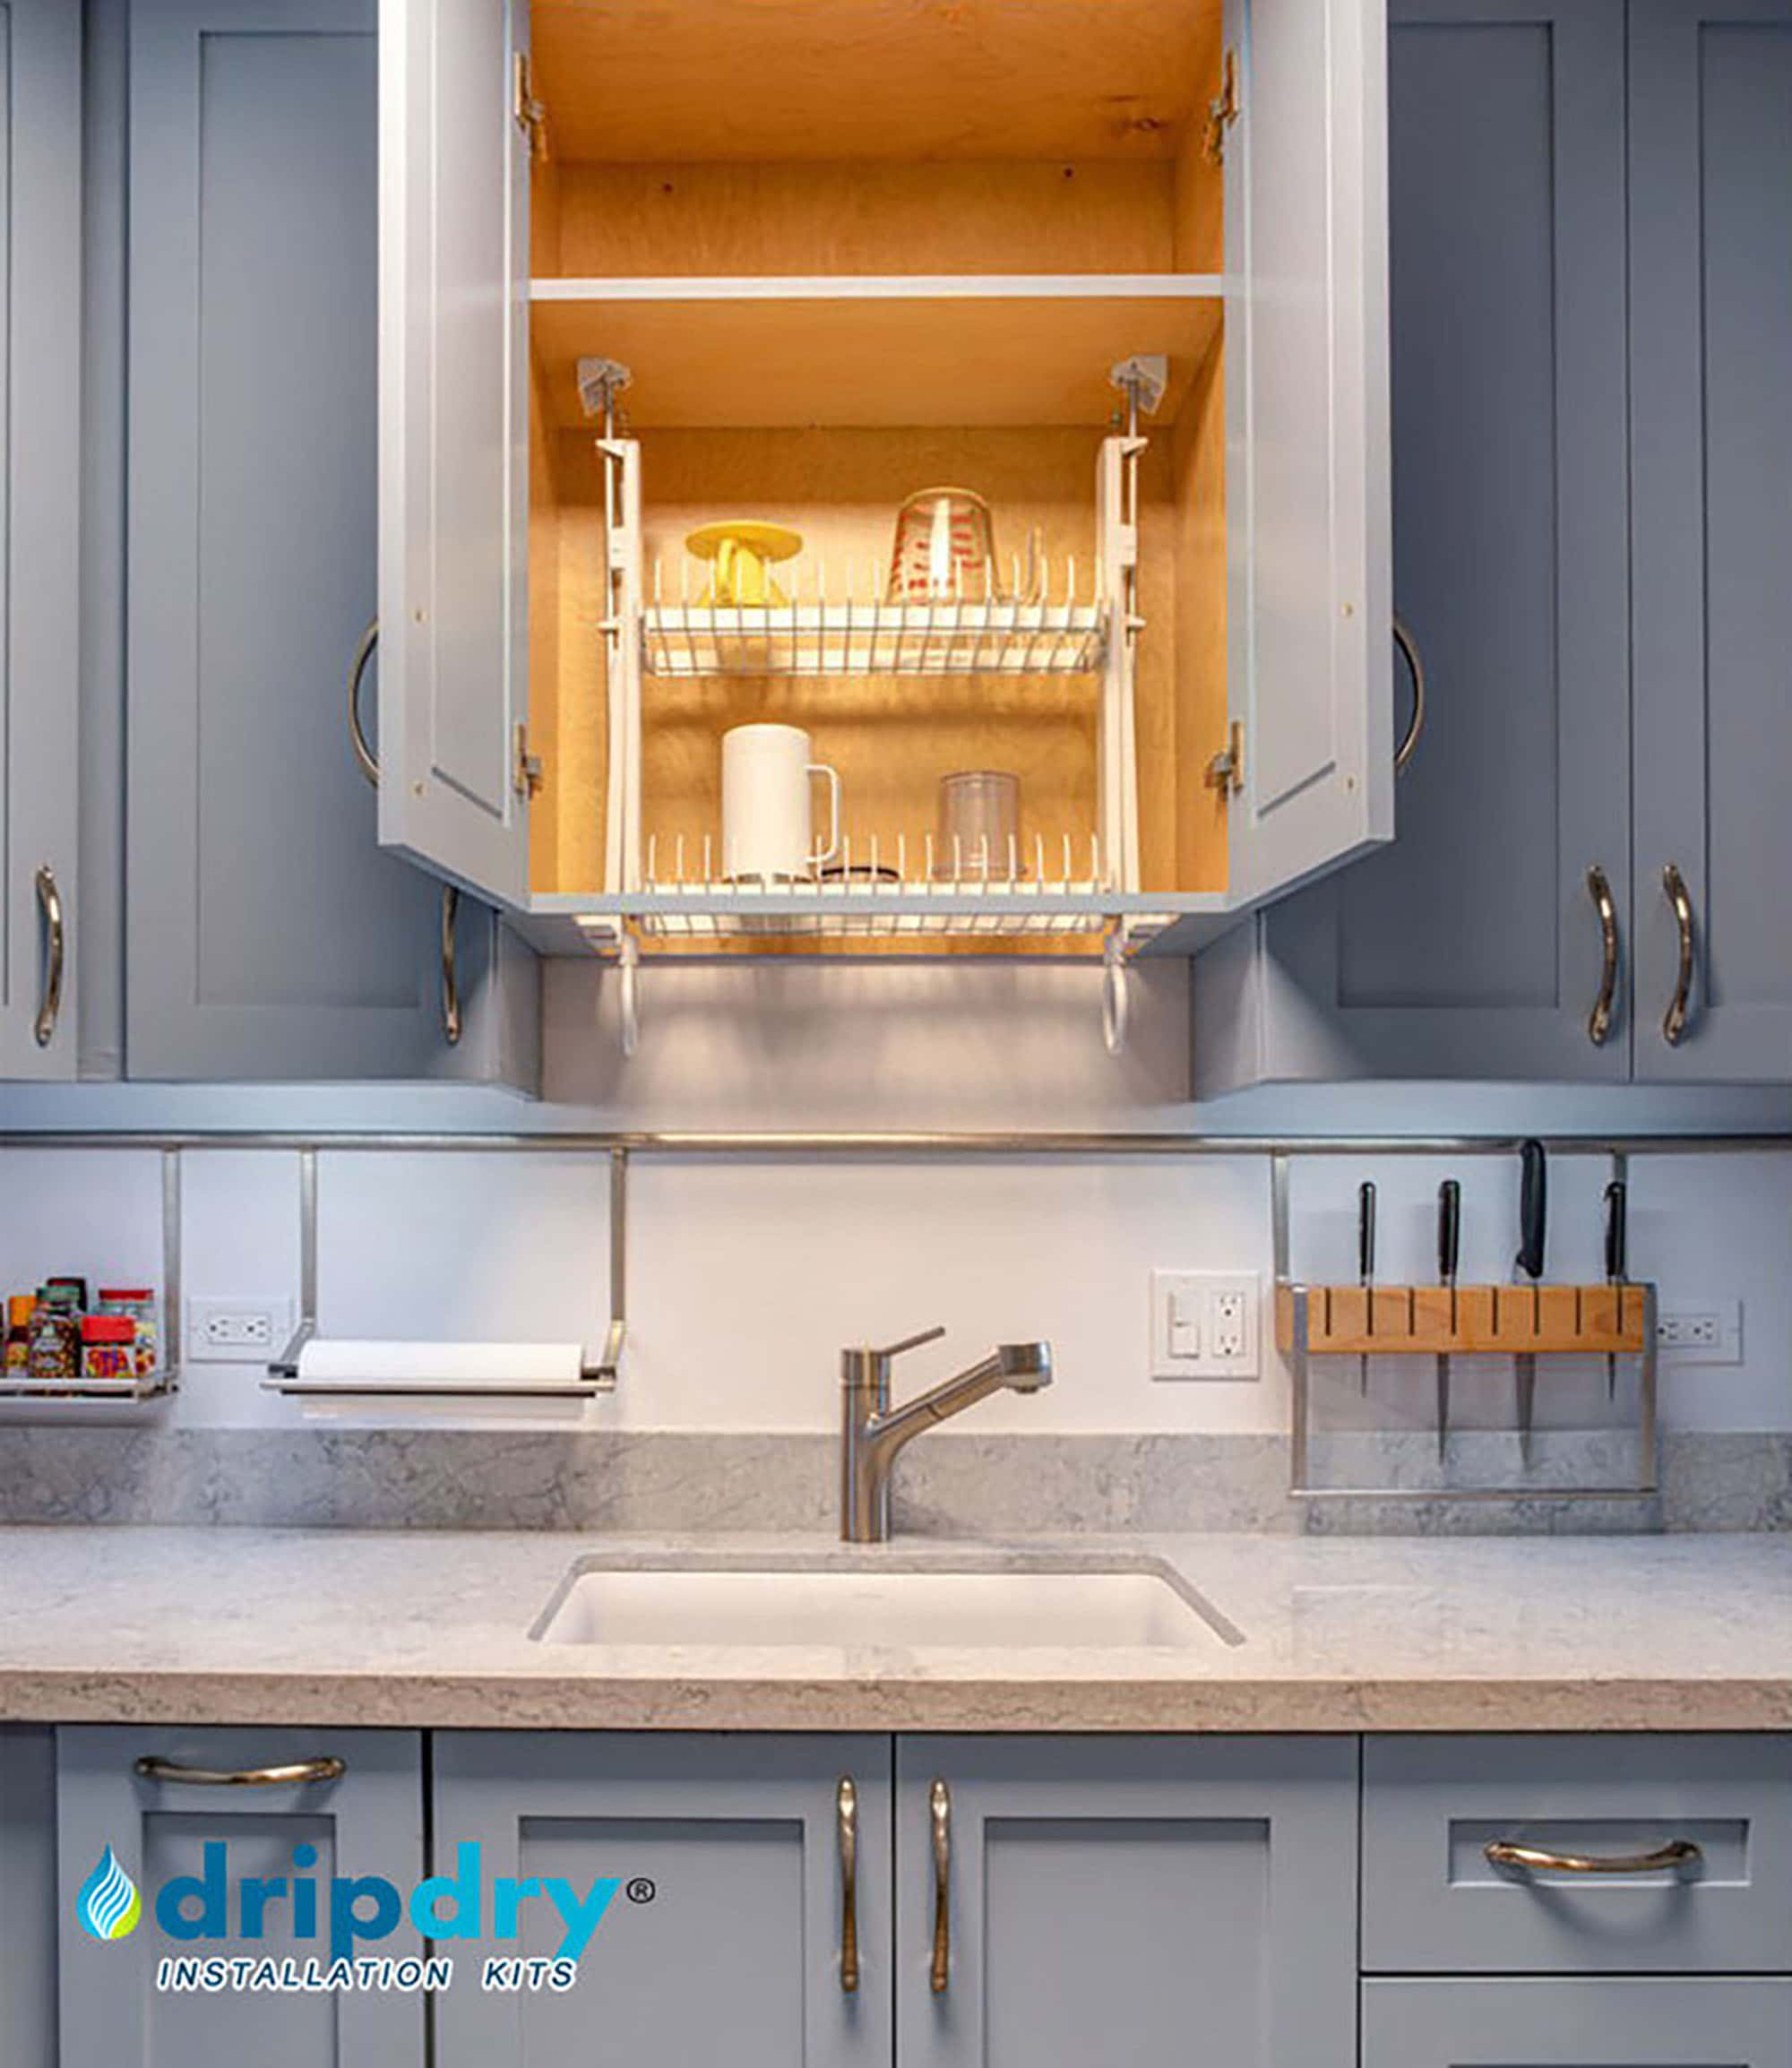 dripdry drying rack fits all cabinets